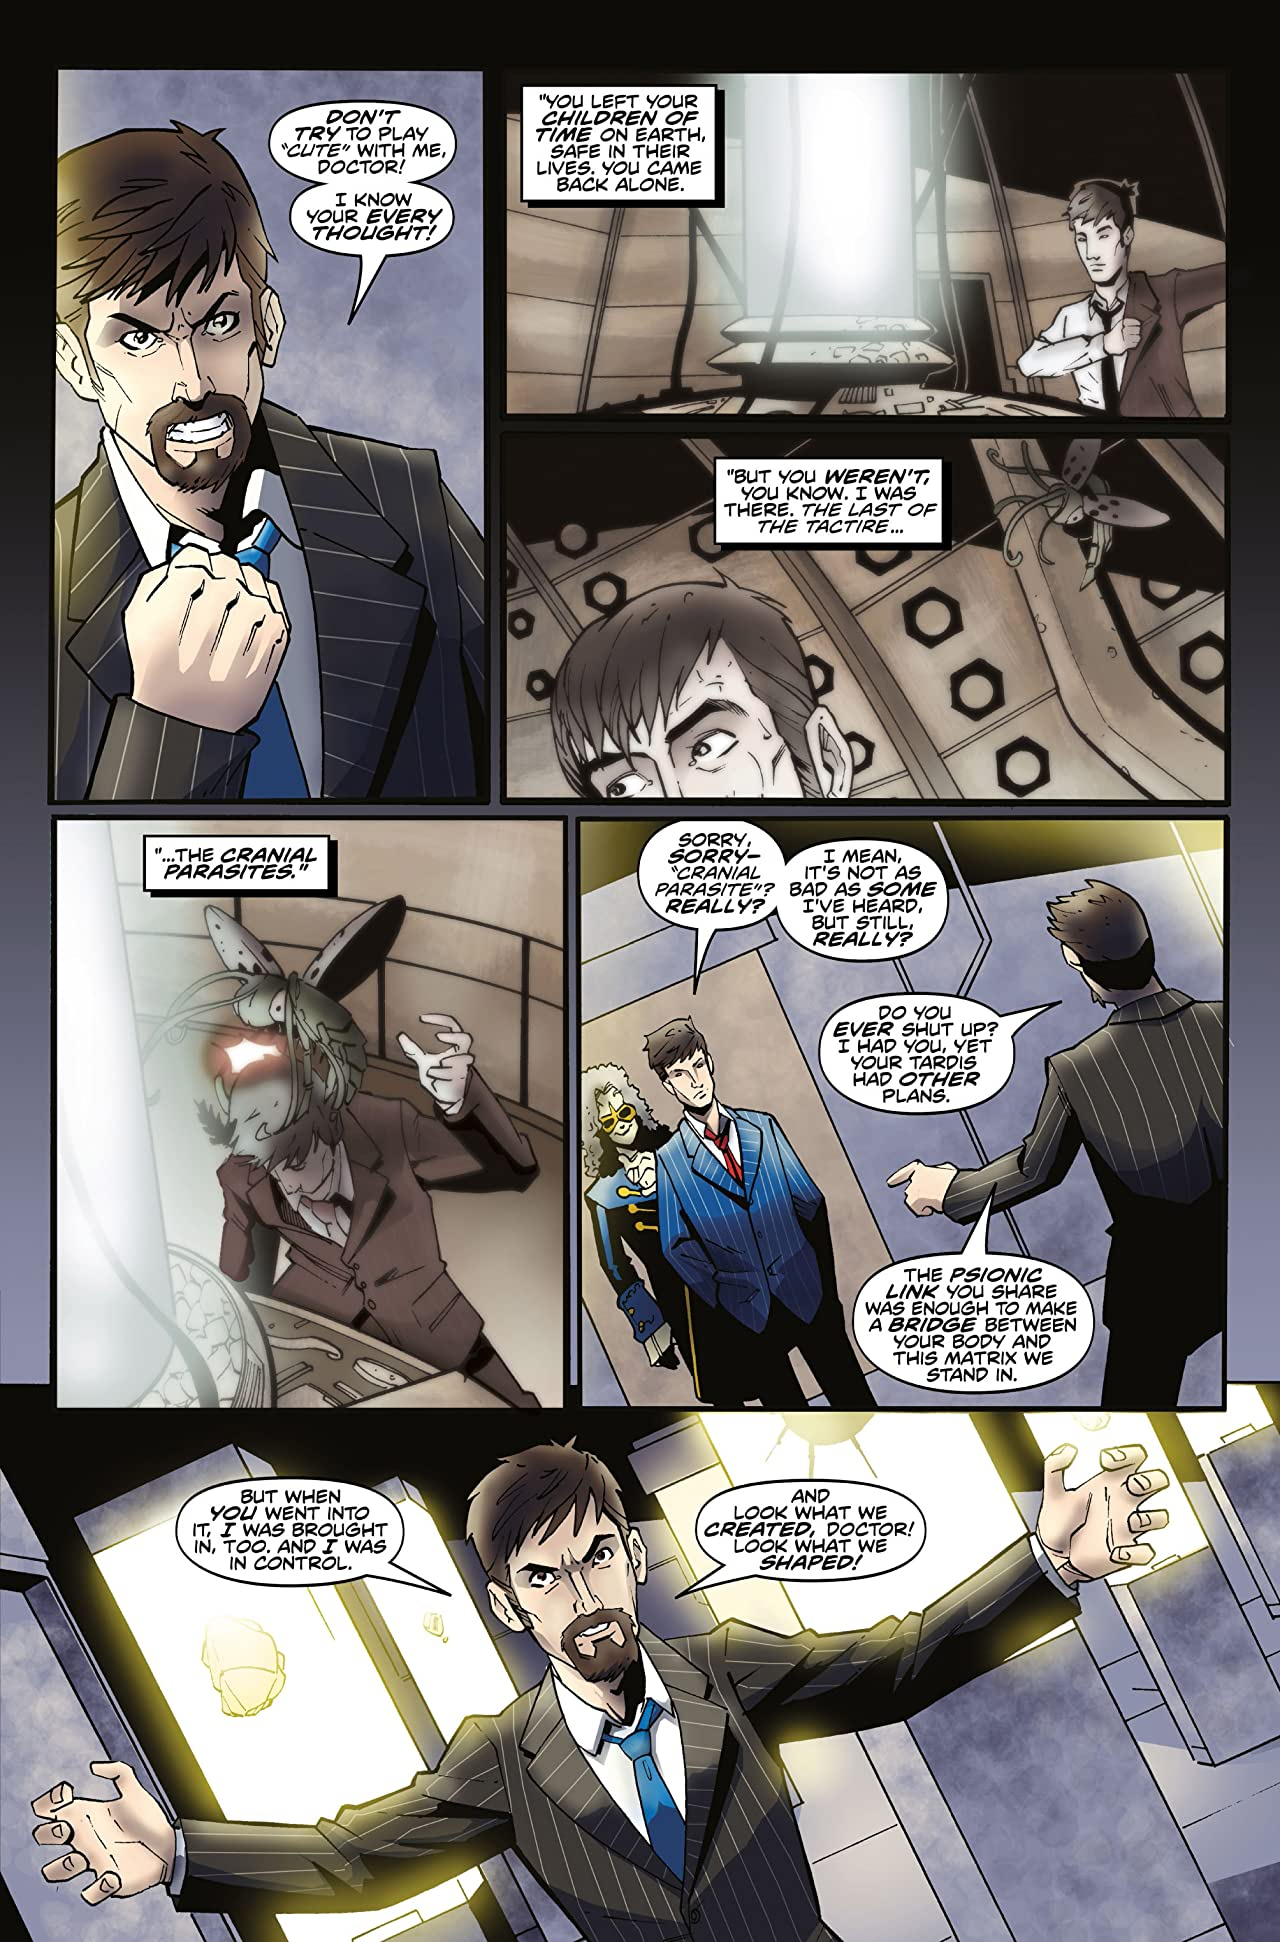 Doctor Who: The Tenth Doctor Archives #12